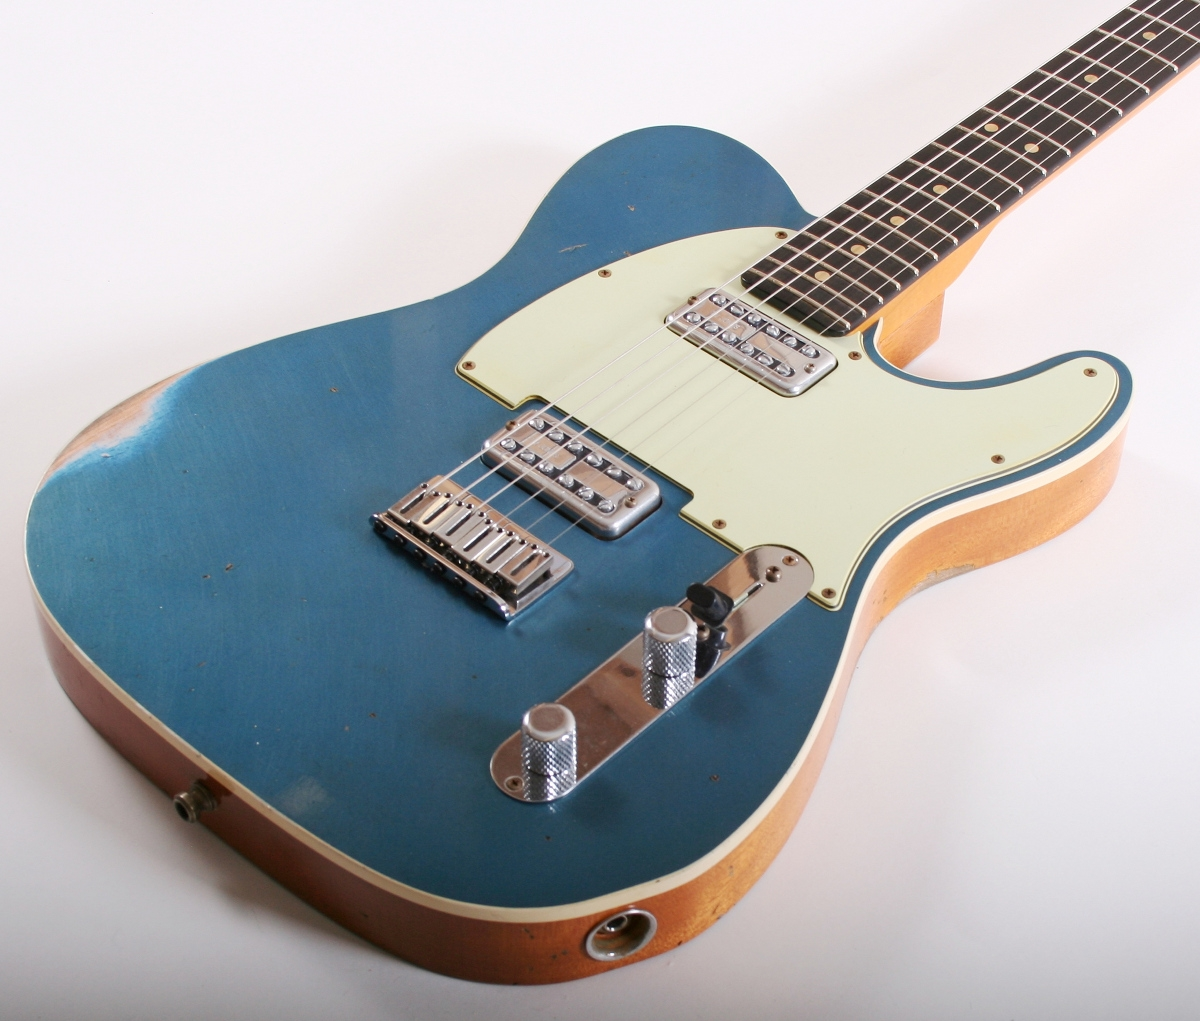 fender custom shop double tv jones telecaster relic lake placid blue. Black Bedroom Furniture Sets. Home Design Ideas